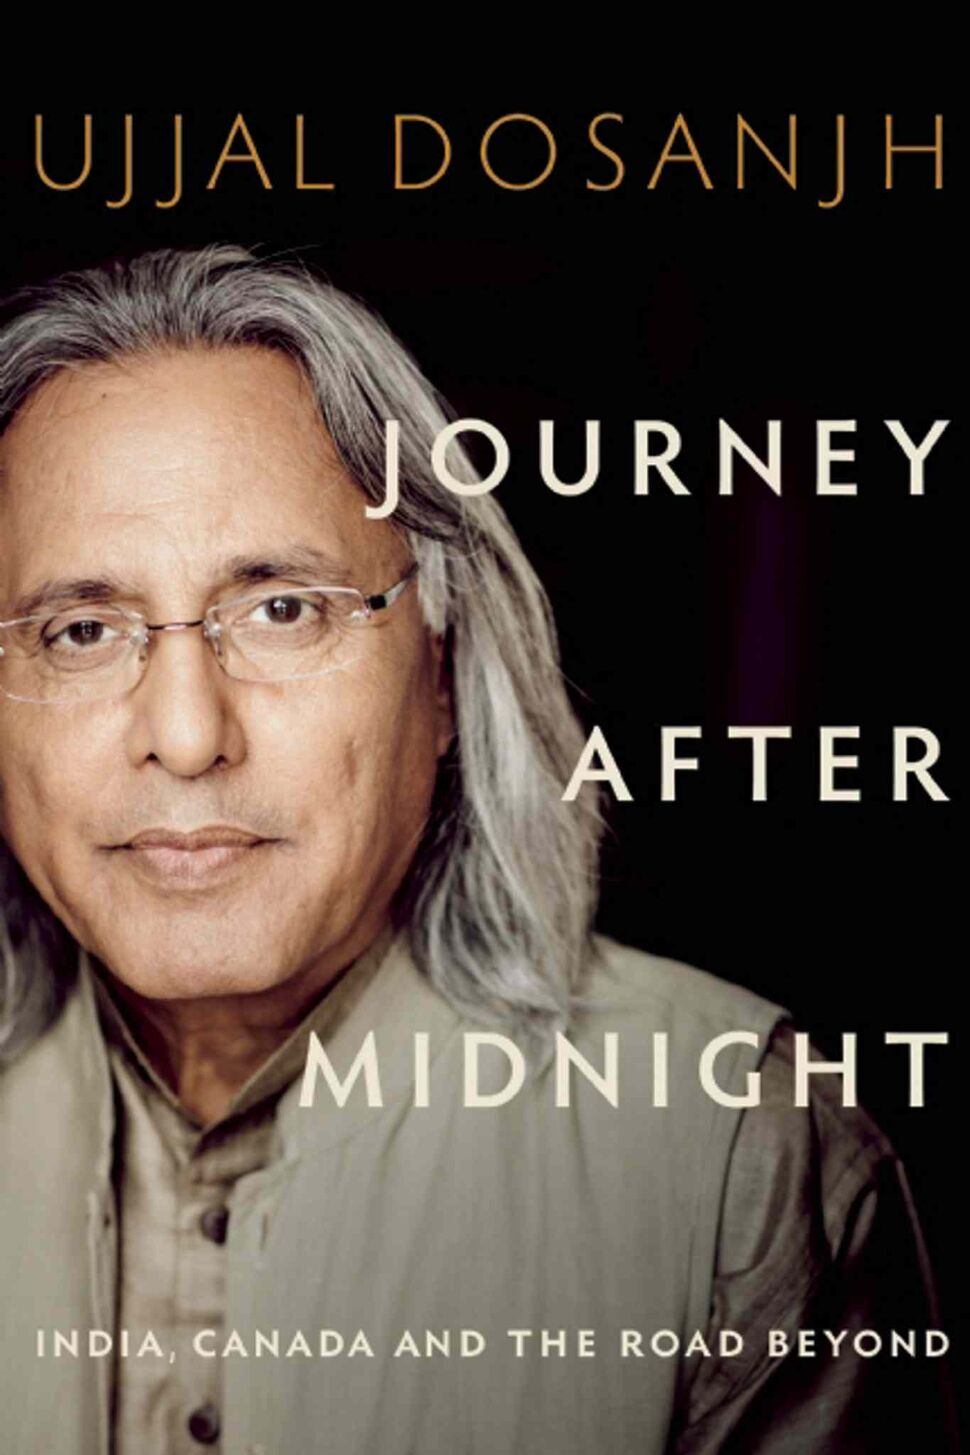 <h3>Journey After Midnight: India, Canada and the Road Beyond</h3> <br/> By Ujjal Dosanjh <br/> <strong>The fascinating and evocative memoir of a courageous man who, in his youth, navigated the rocky path of emigration from a poor village in India, and who went on to become the premier of British Columbia.</strong <br/> — Faith Johnston